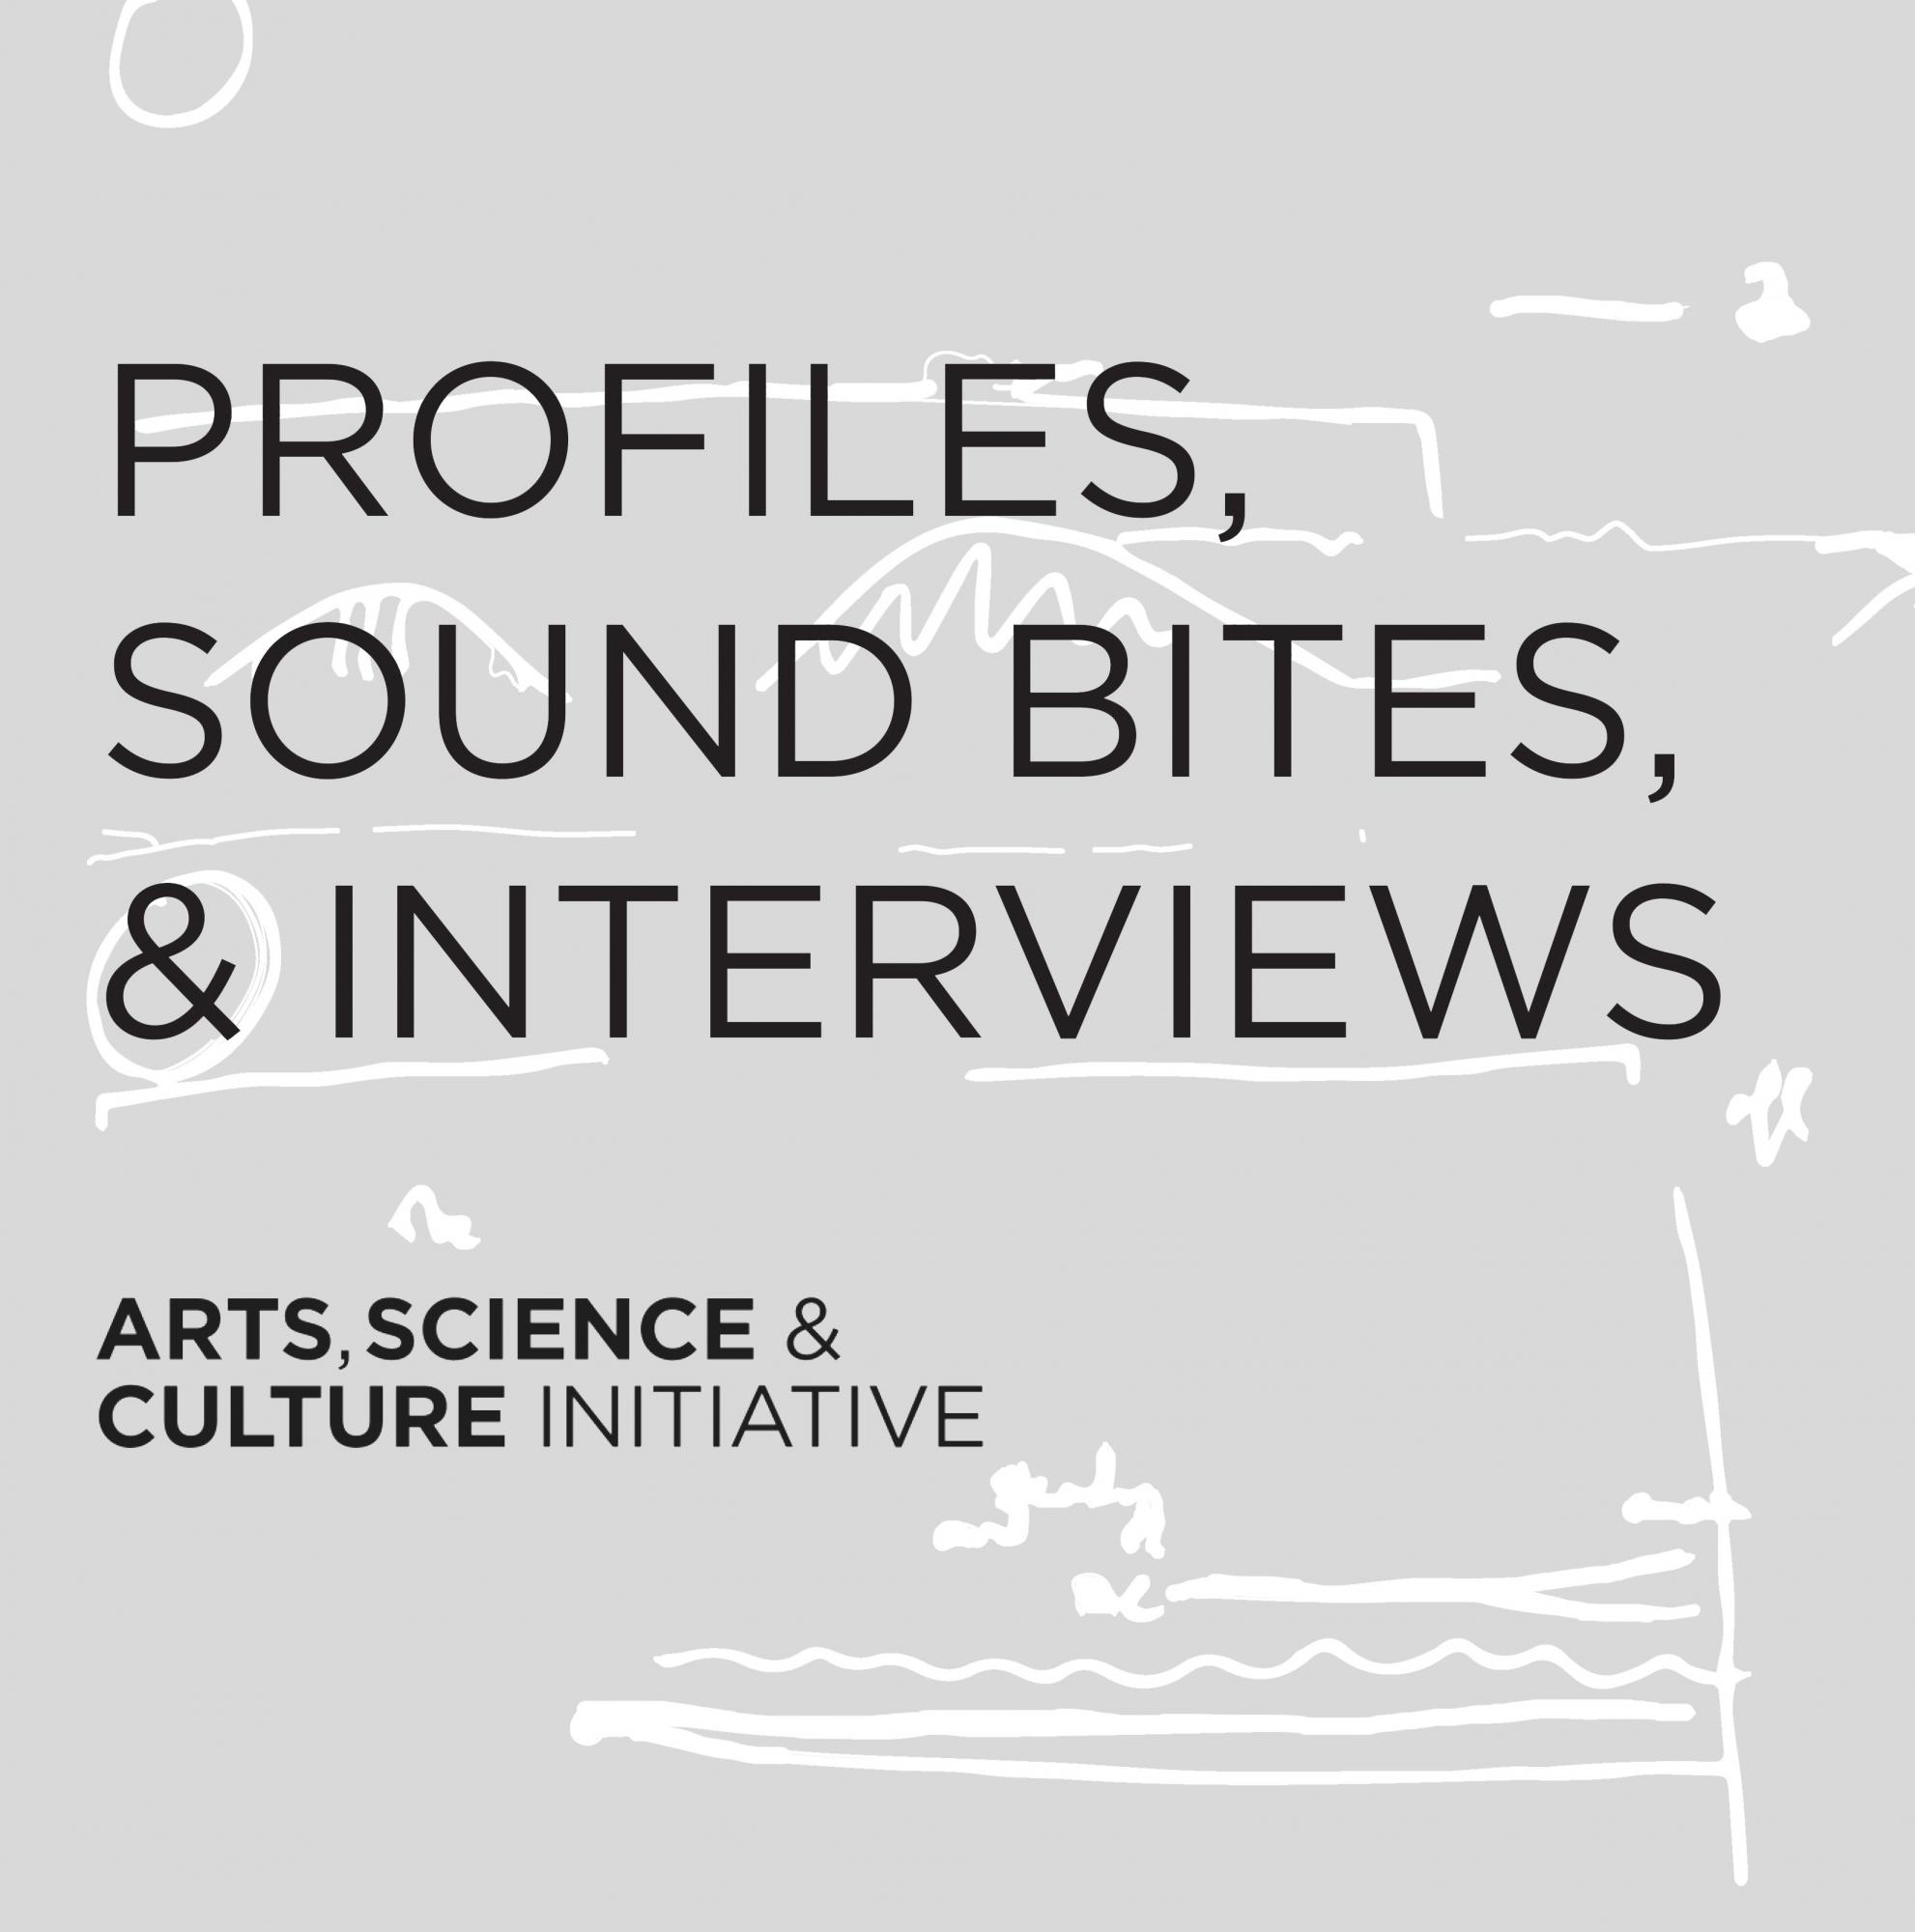 Profiles, Sound Bites, Interviews